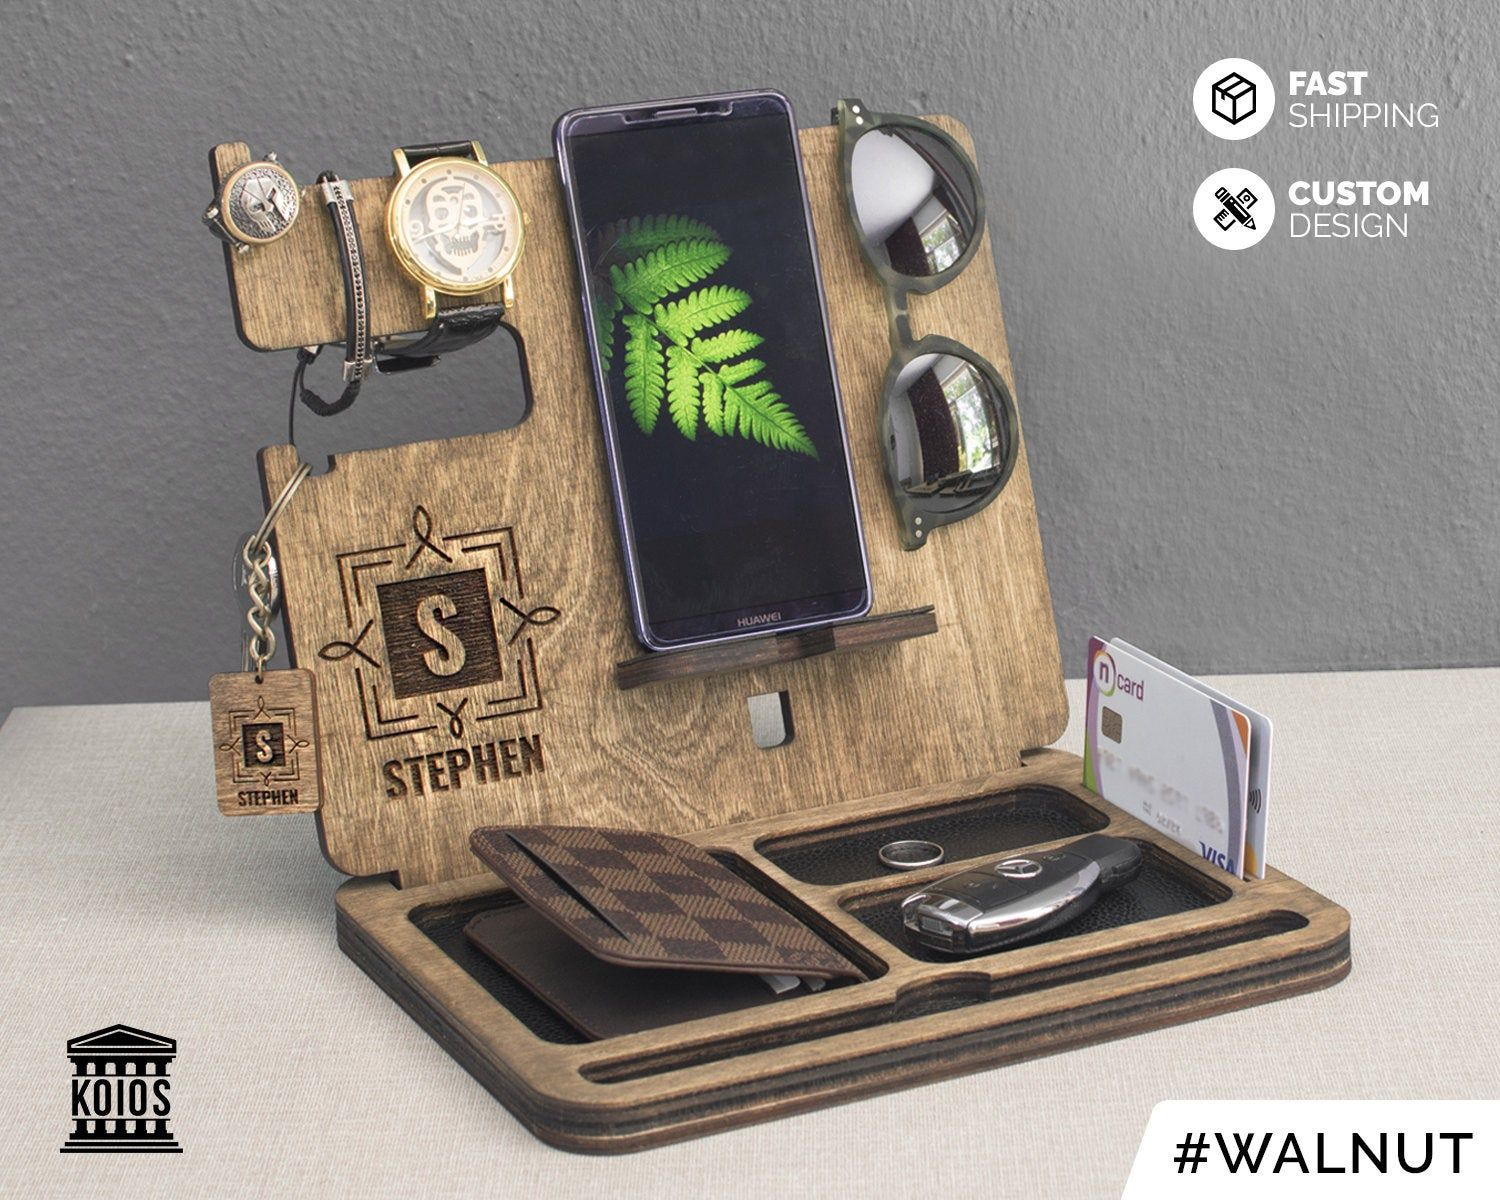 Christmas Gift for Men Solid Walnut,Docking Station,Men/'s Valet,Desk Organizer,Charging Station,Valet Tray,Personalized,iPhone.iPad,Apple